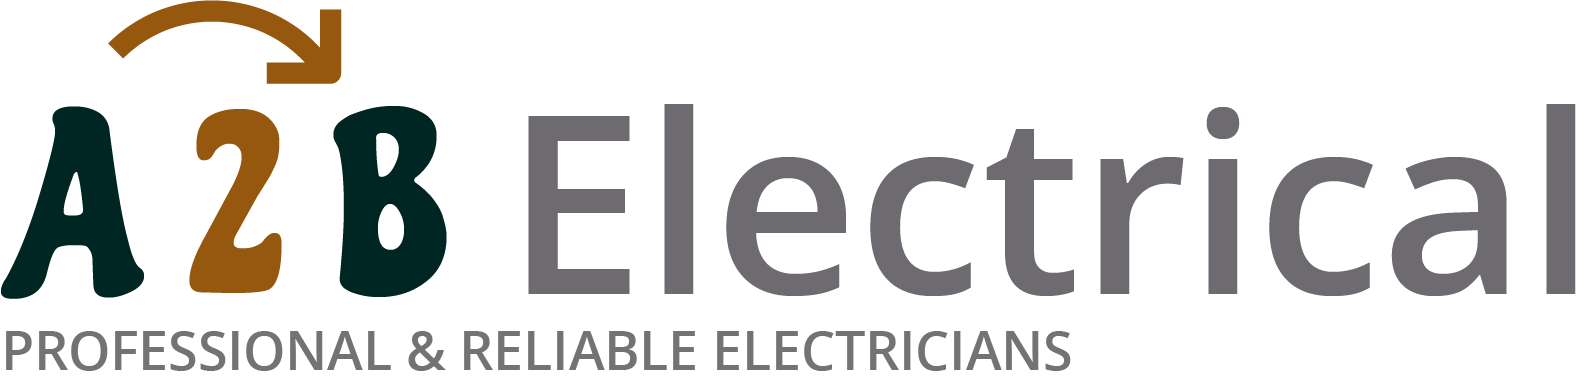 If you have electrical wiring problems in Brentford, we can provide an electrician to have a look for you.